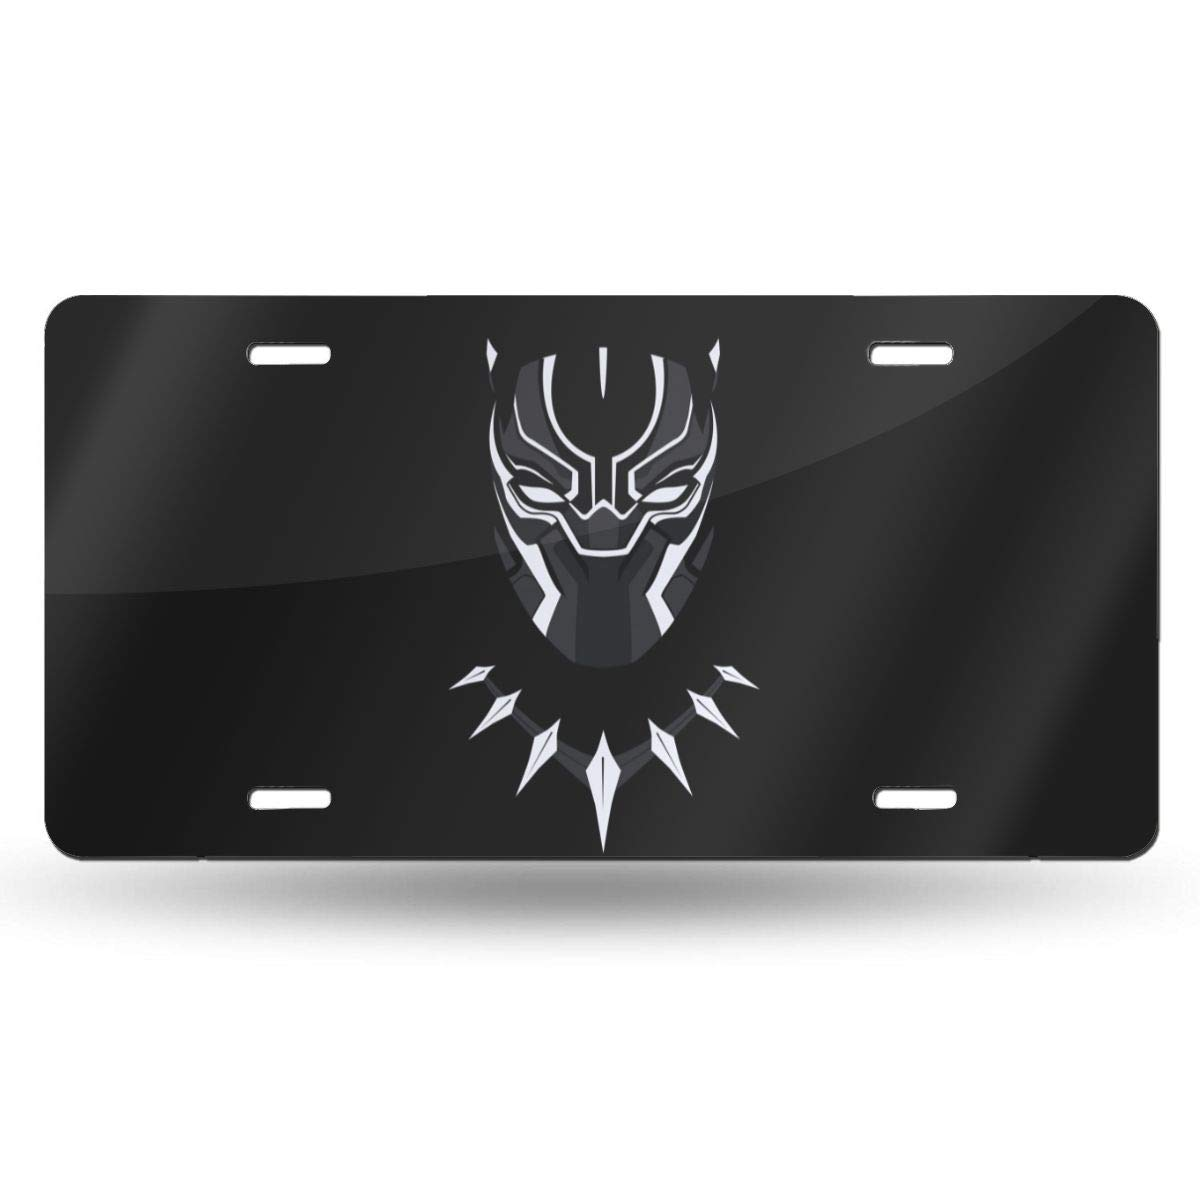 ZhSeHhats Black Panther Metal License Plate - Soccer Team Design Novelty Home Decoration Car Tags - 6 x 12 inch